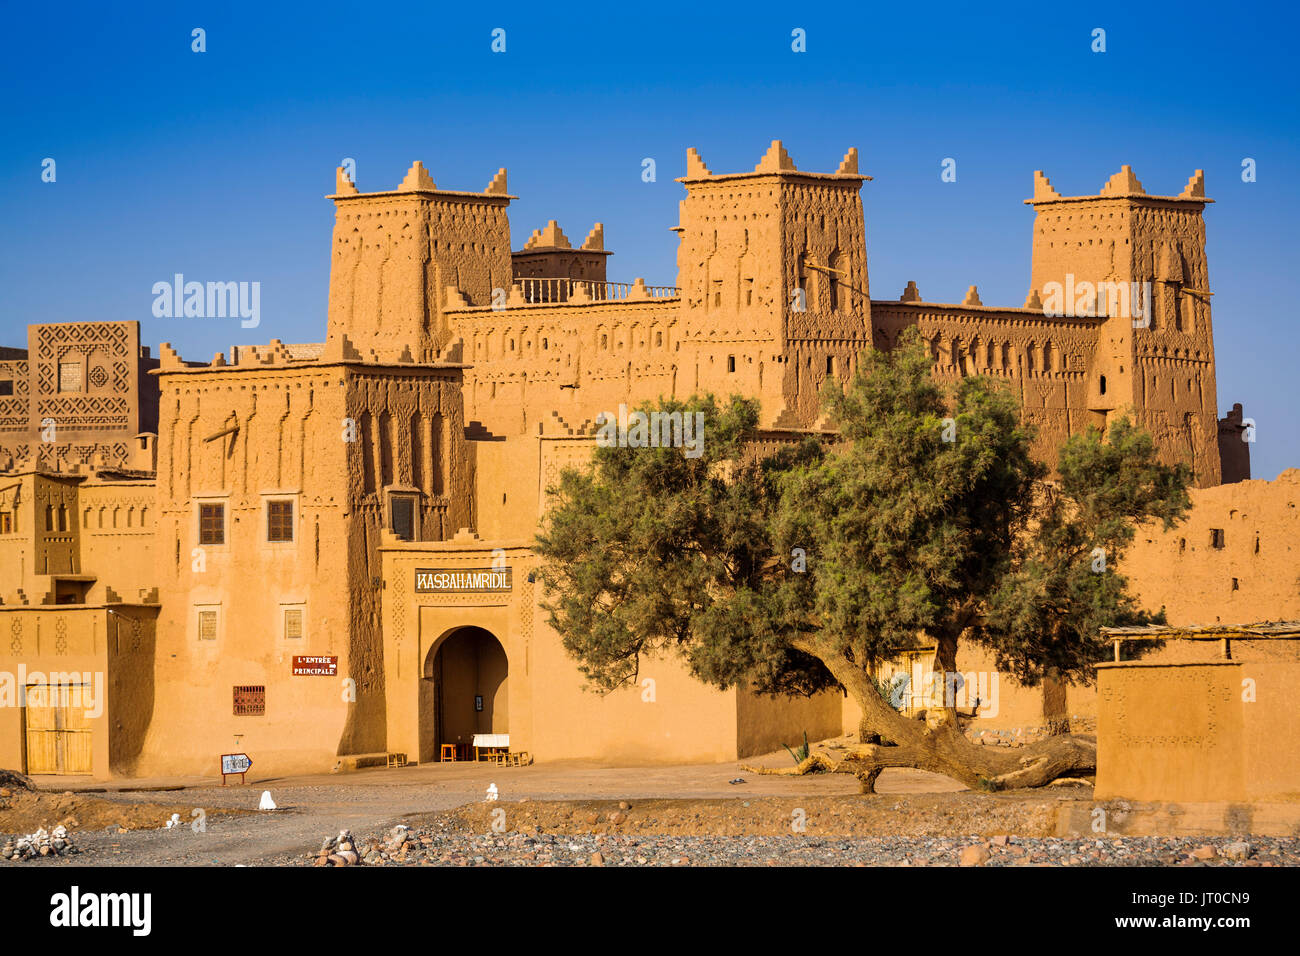 Hotel Kasbah Amridil, Dades Valley, Skoura. Morocco, Maghreb North Africa Stock Photo